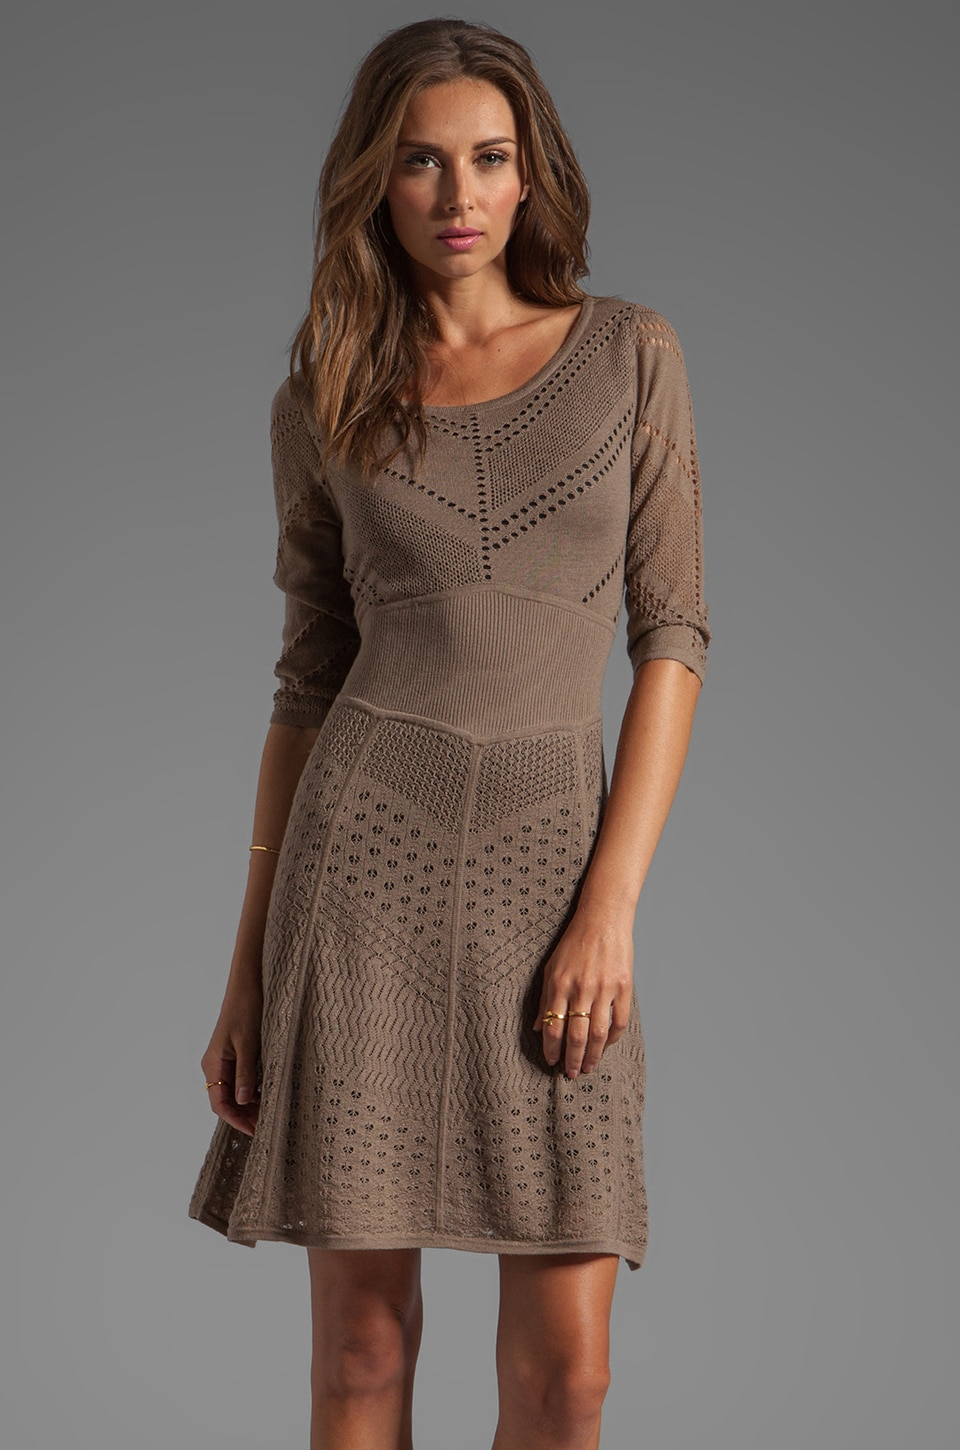 Catherine Malandrino Favorites 3/4 Sleeve Mixed Pointelle Dress in Rock